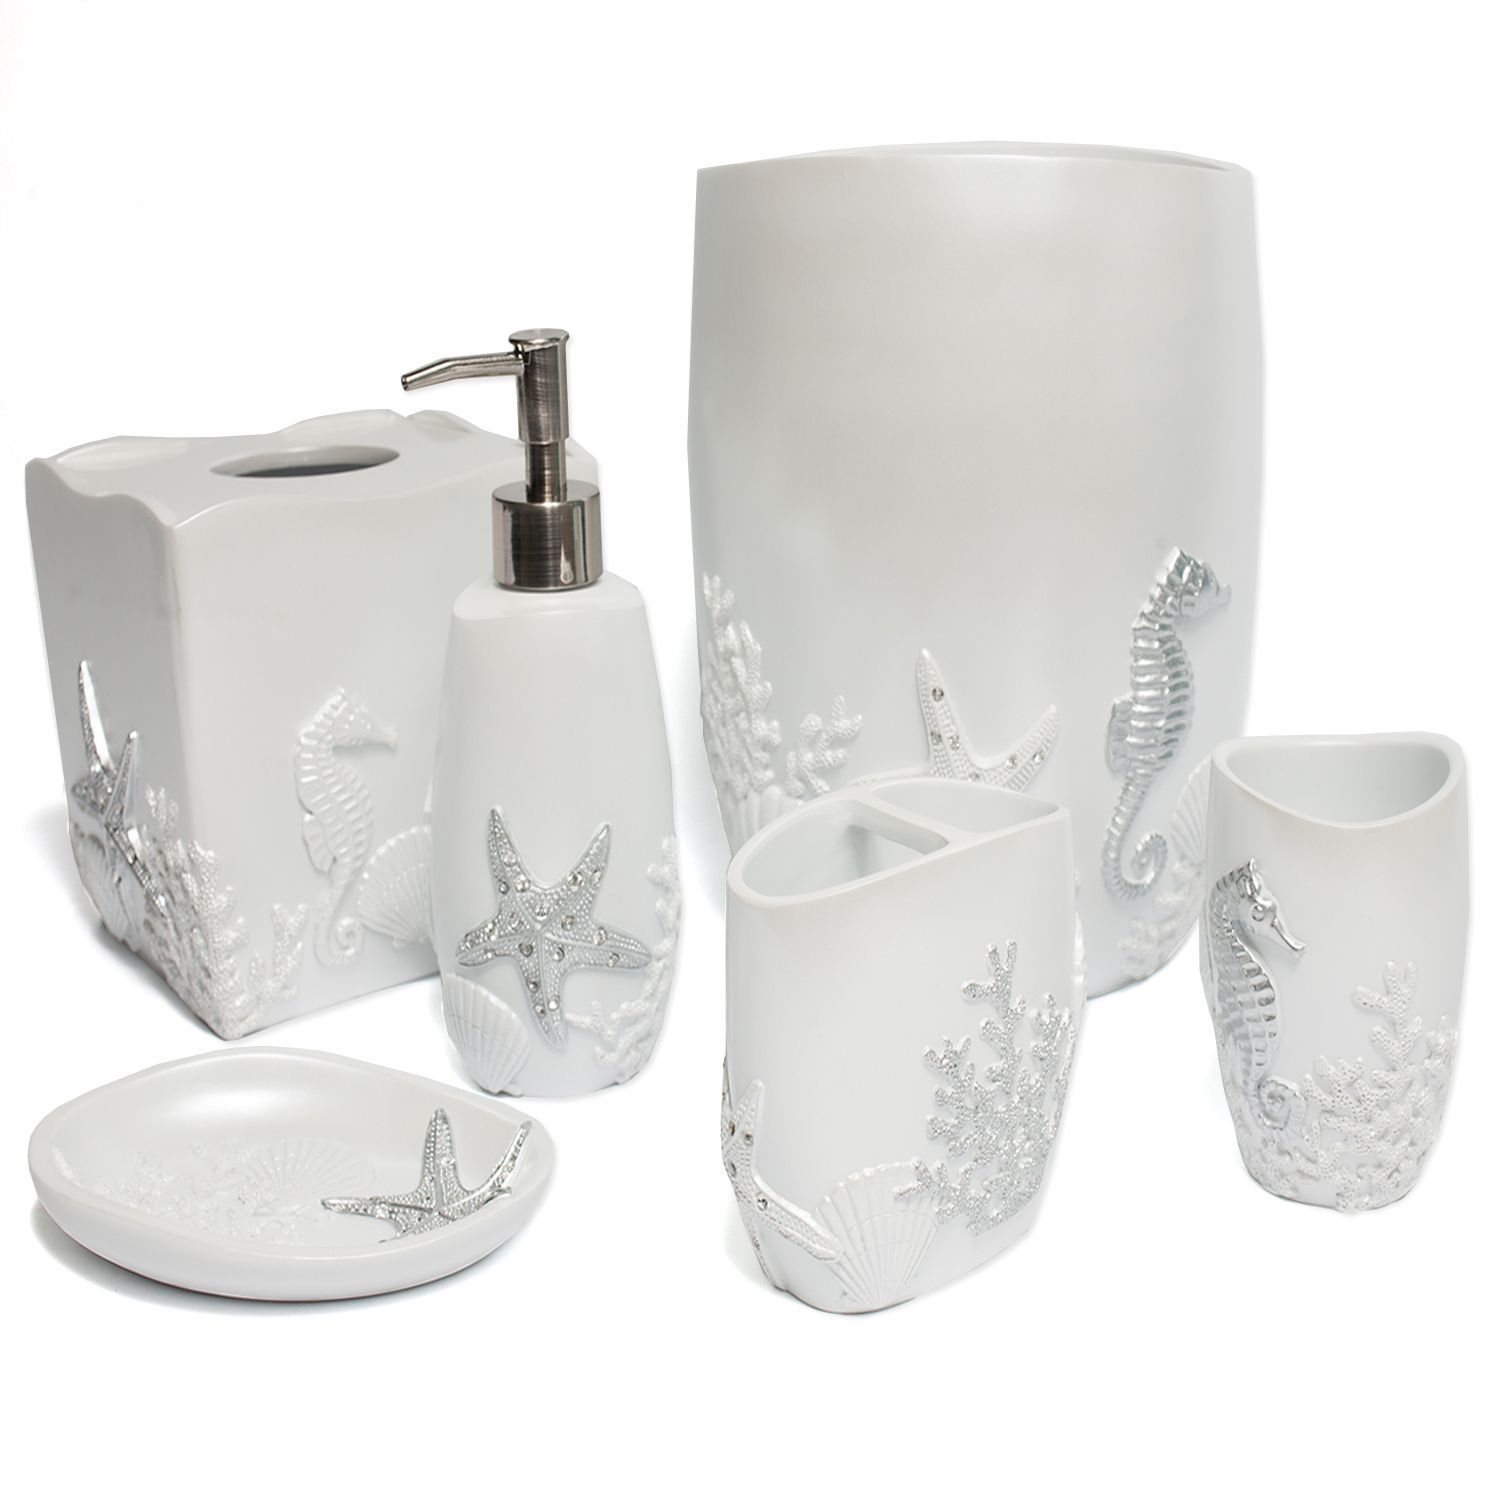 This ornate hand crafted bathroom accessory set is available as a ...